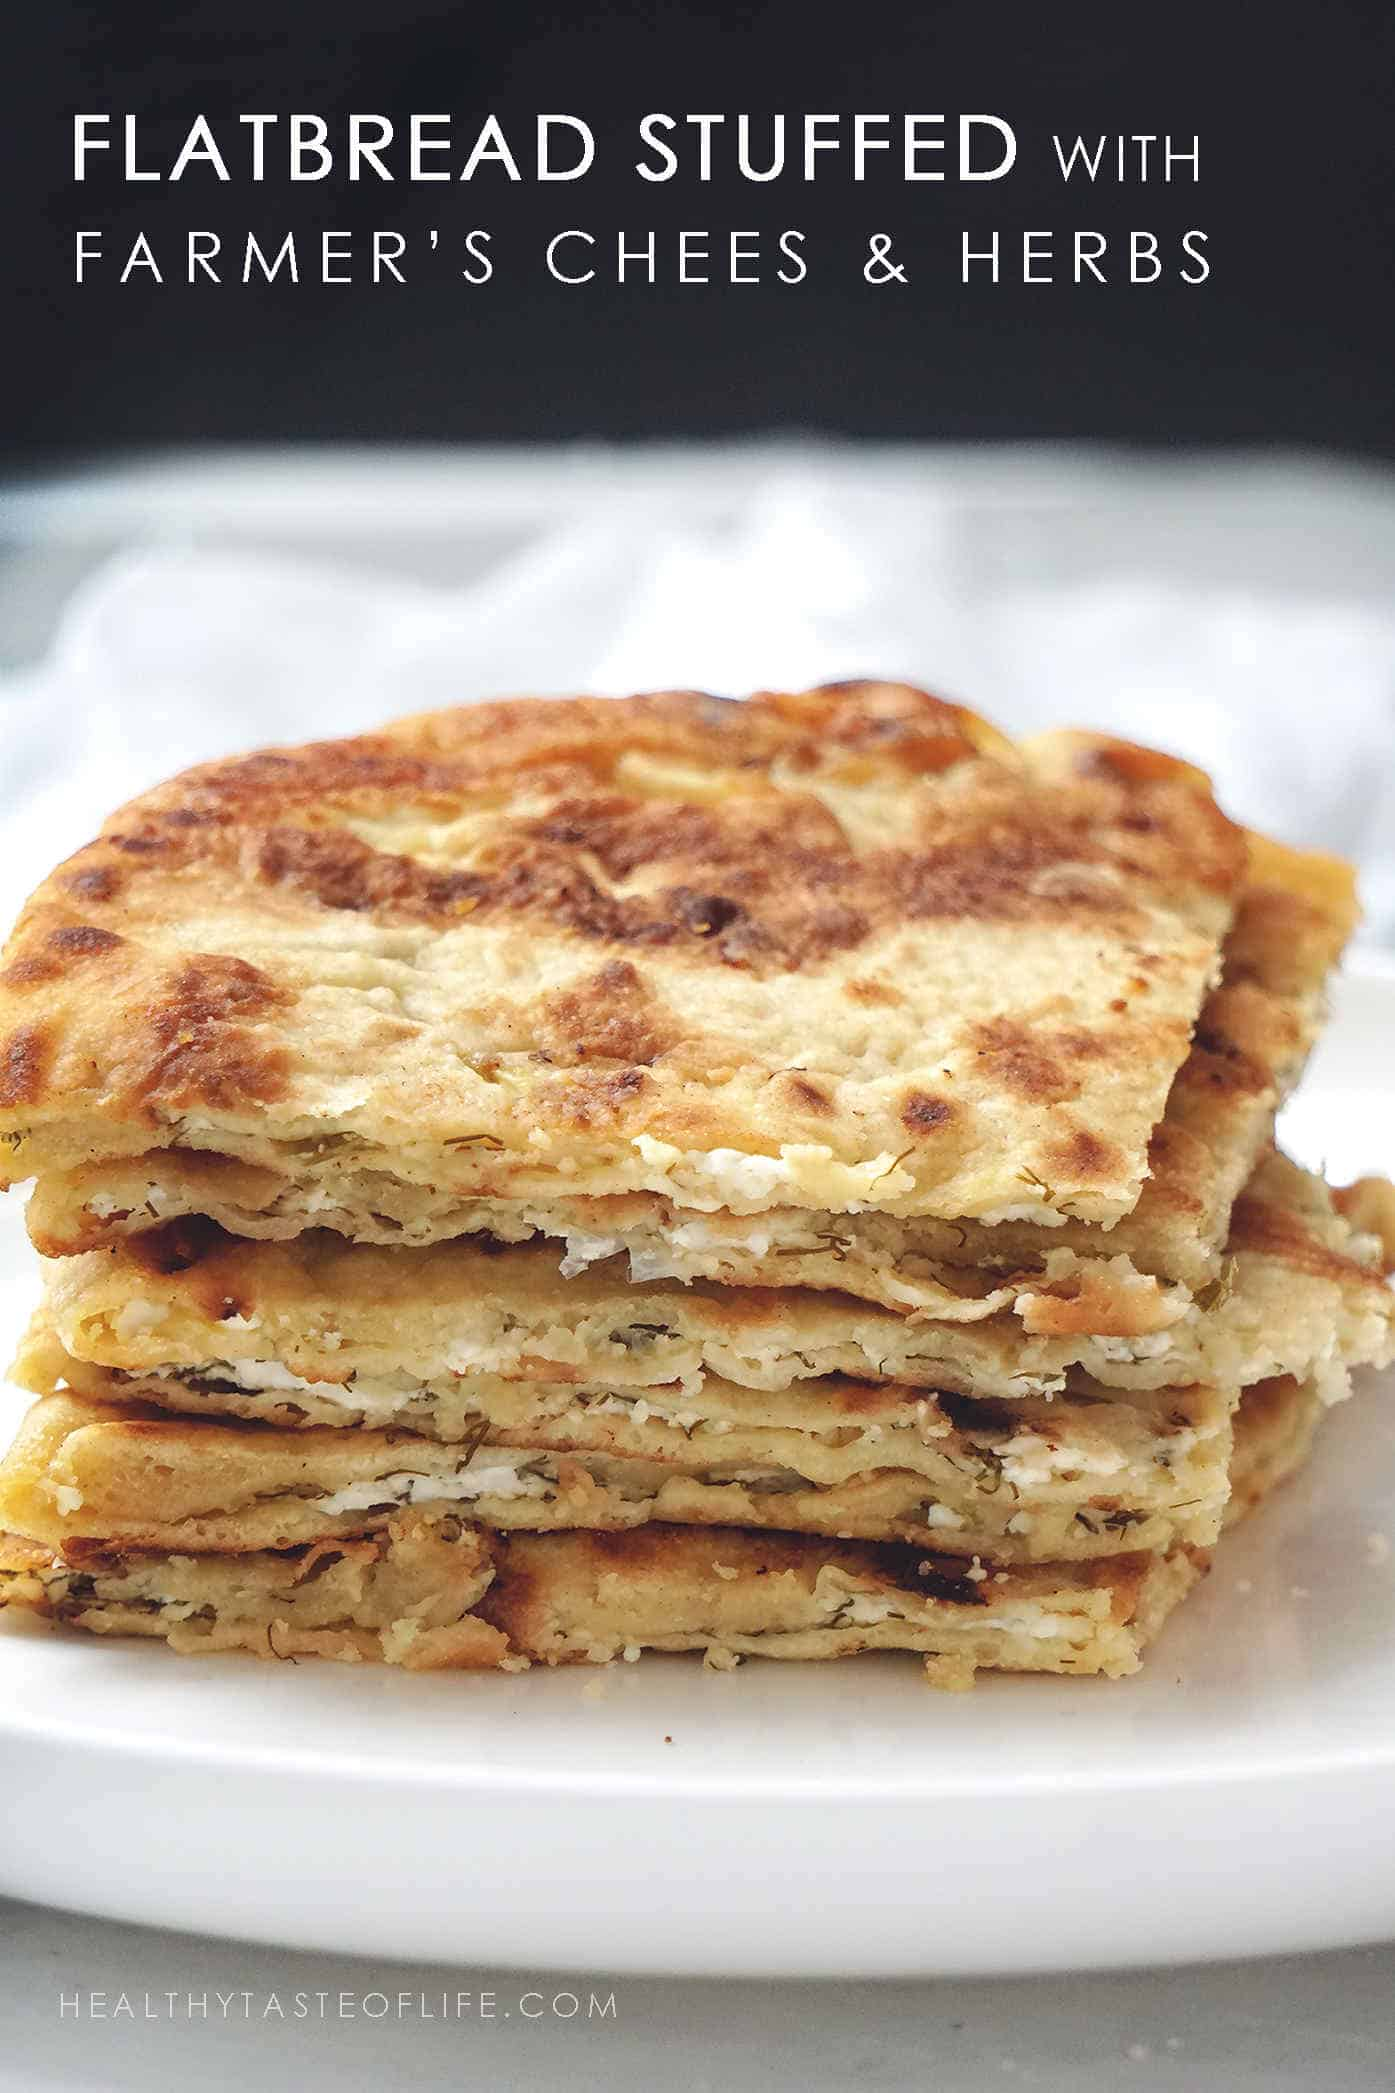 homemade stuffed flatbread or paratha with farmer's cheese